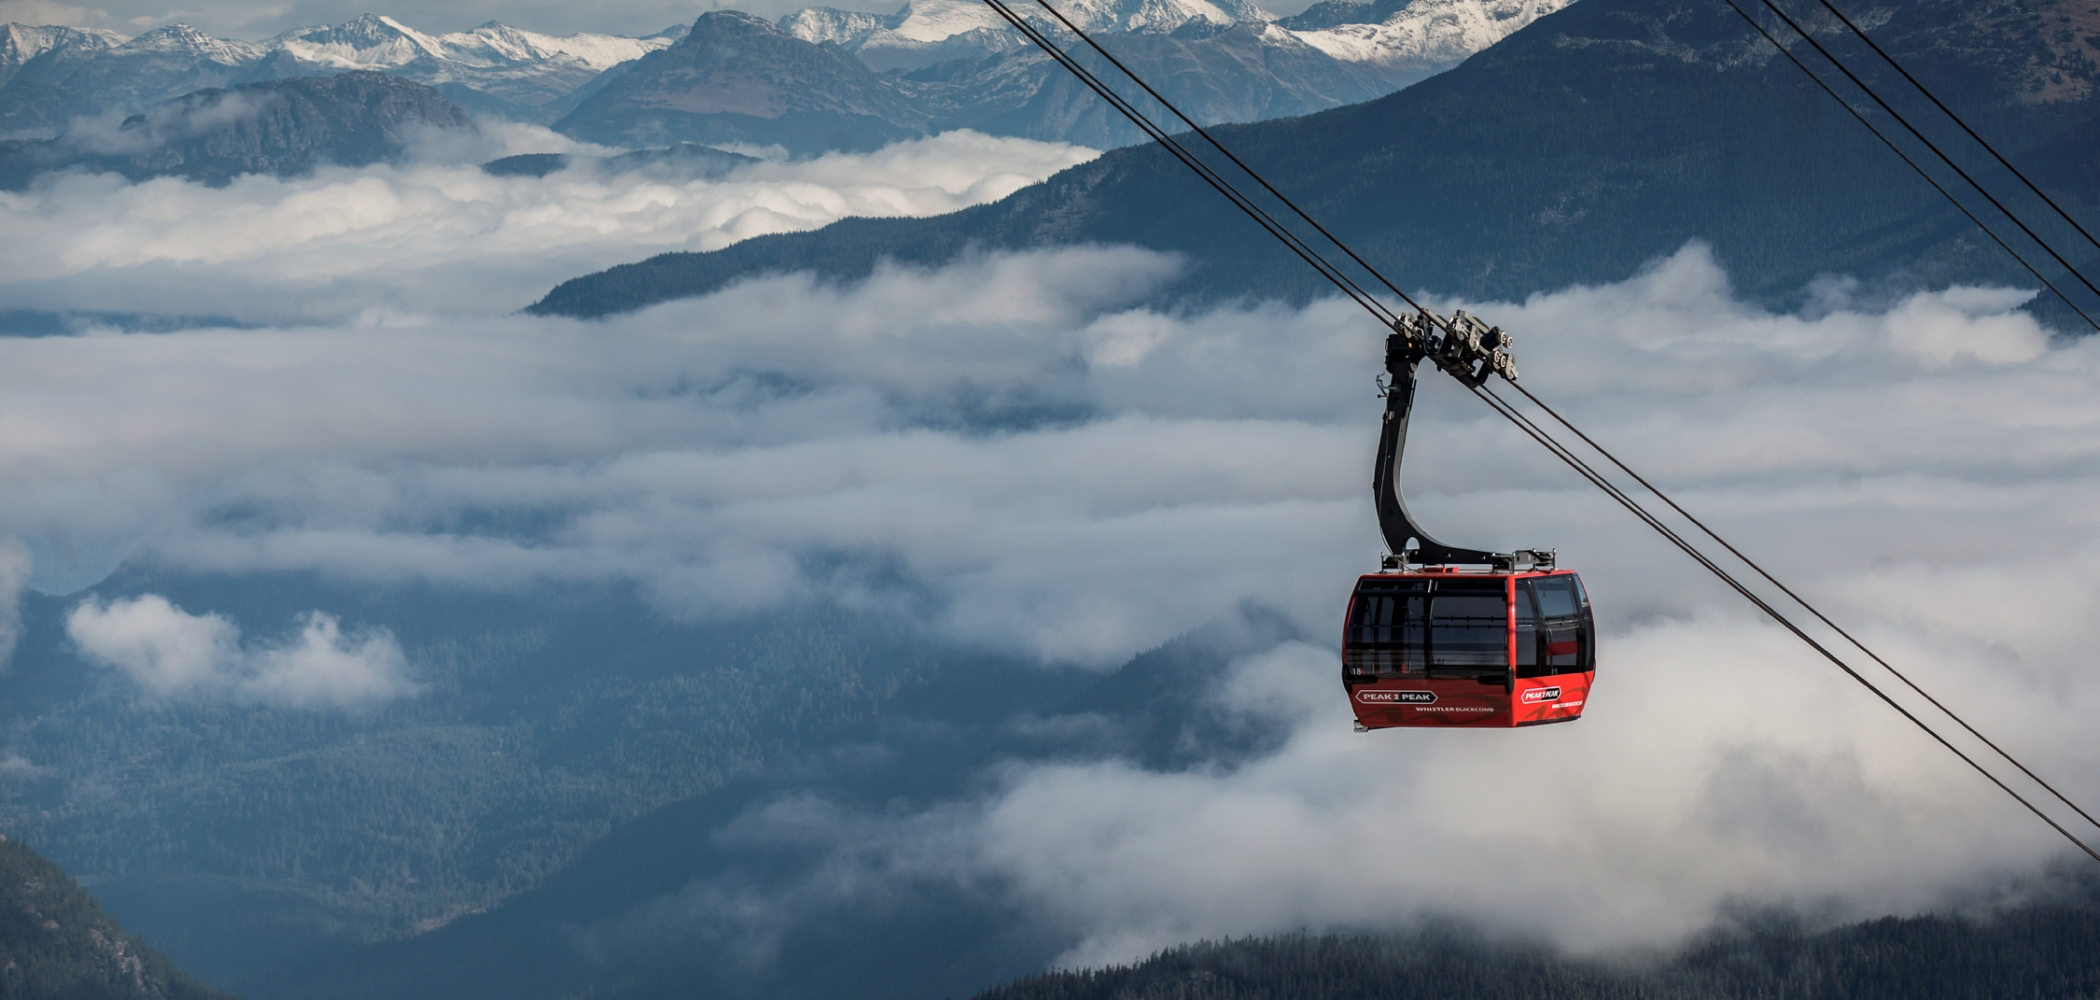 Peak to Peak Gondola in Whistler